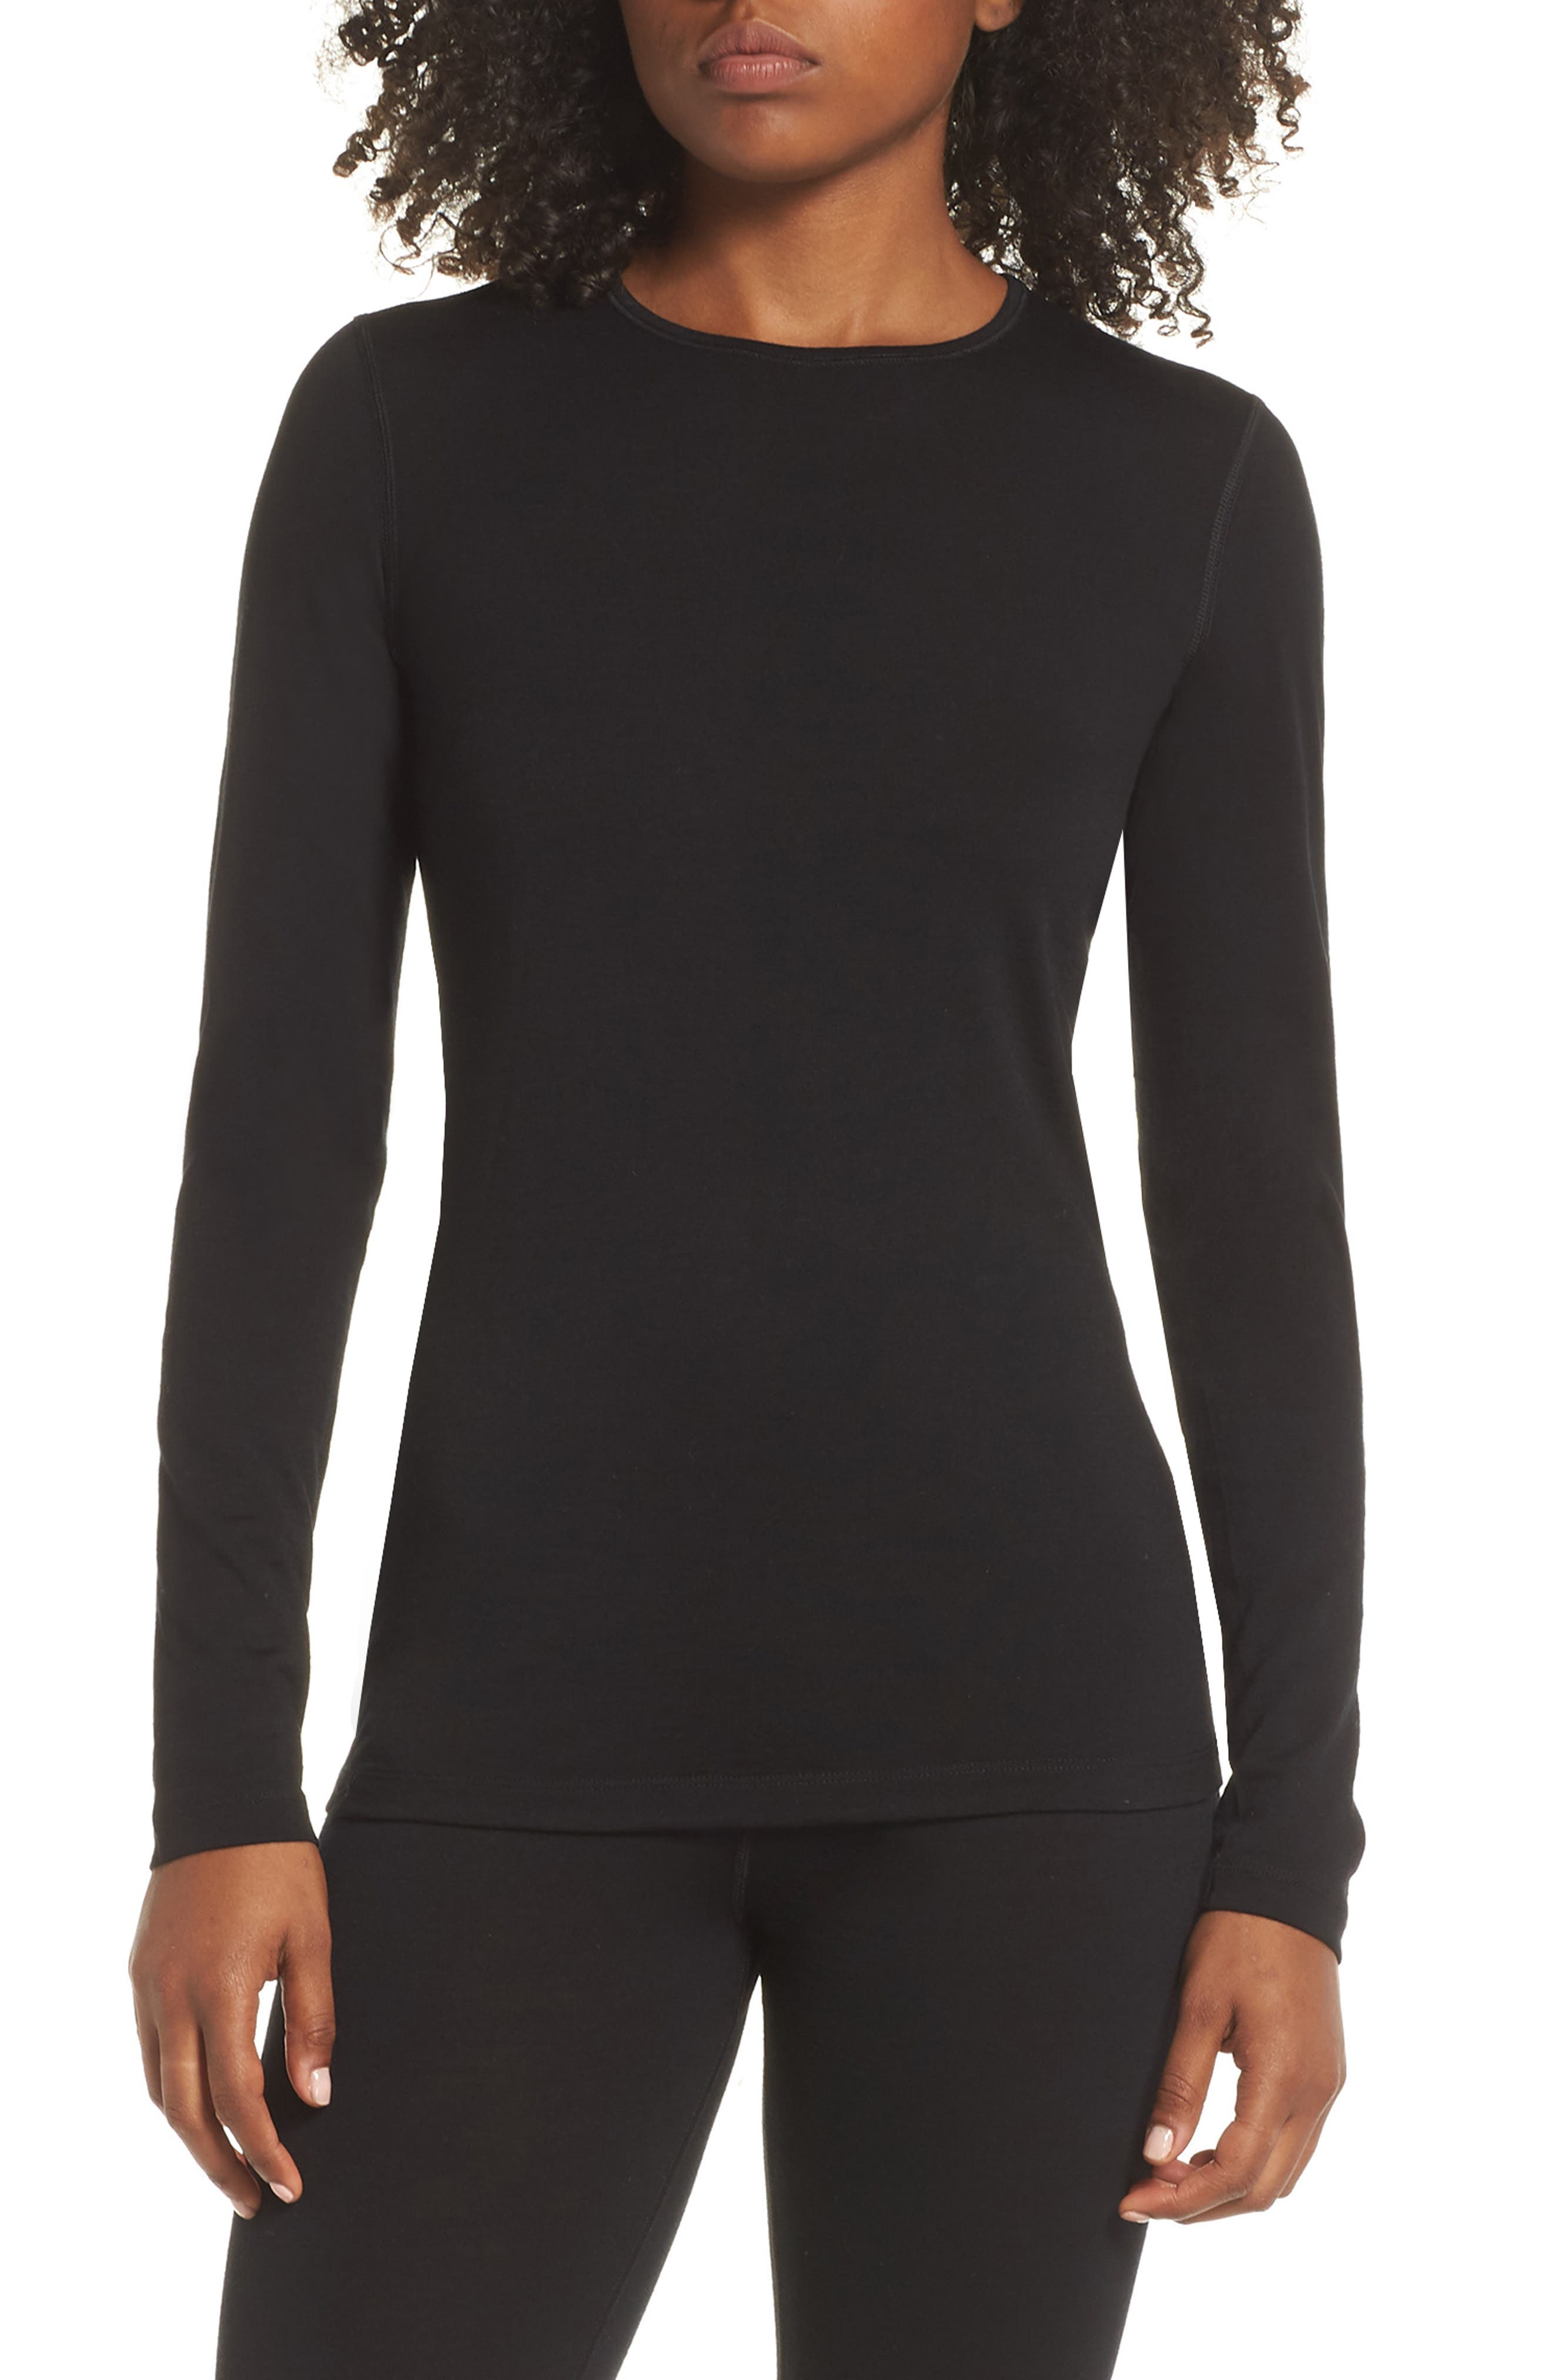 Oasis Long Sleeve Merino Wool Base Layer Tee,                         Main,                         color, BLACK